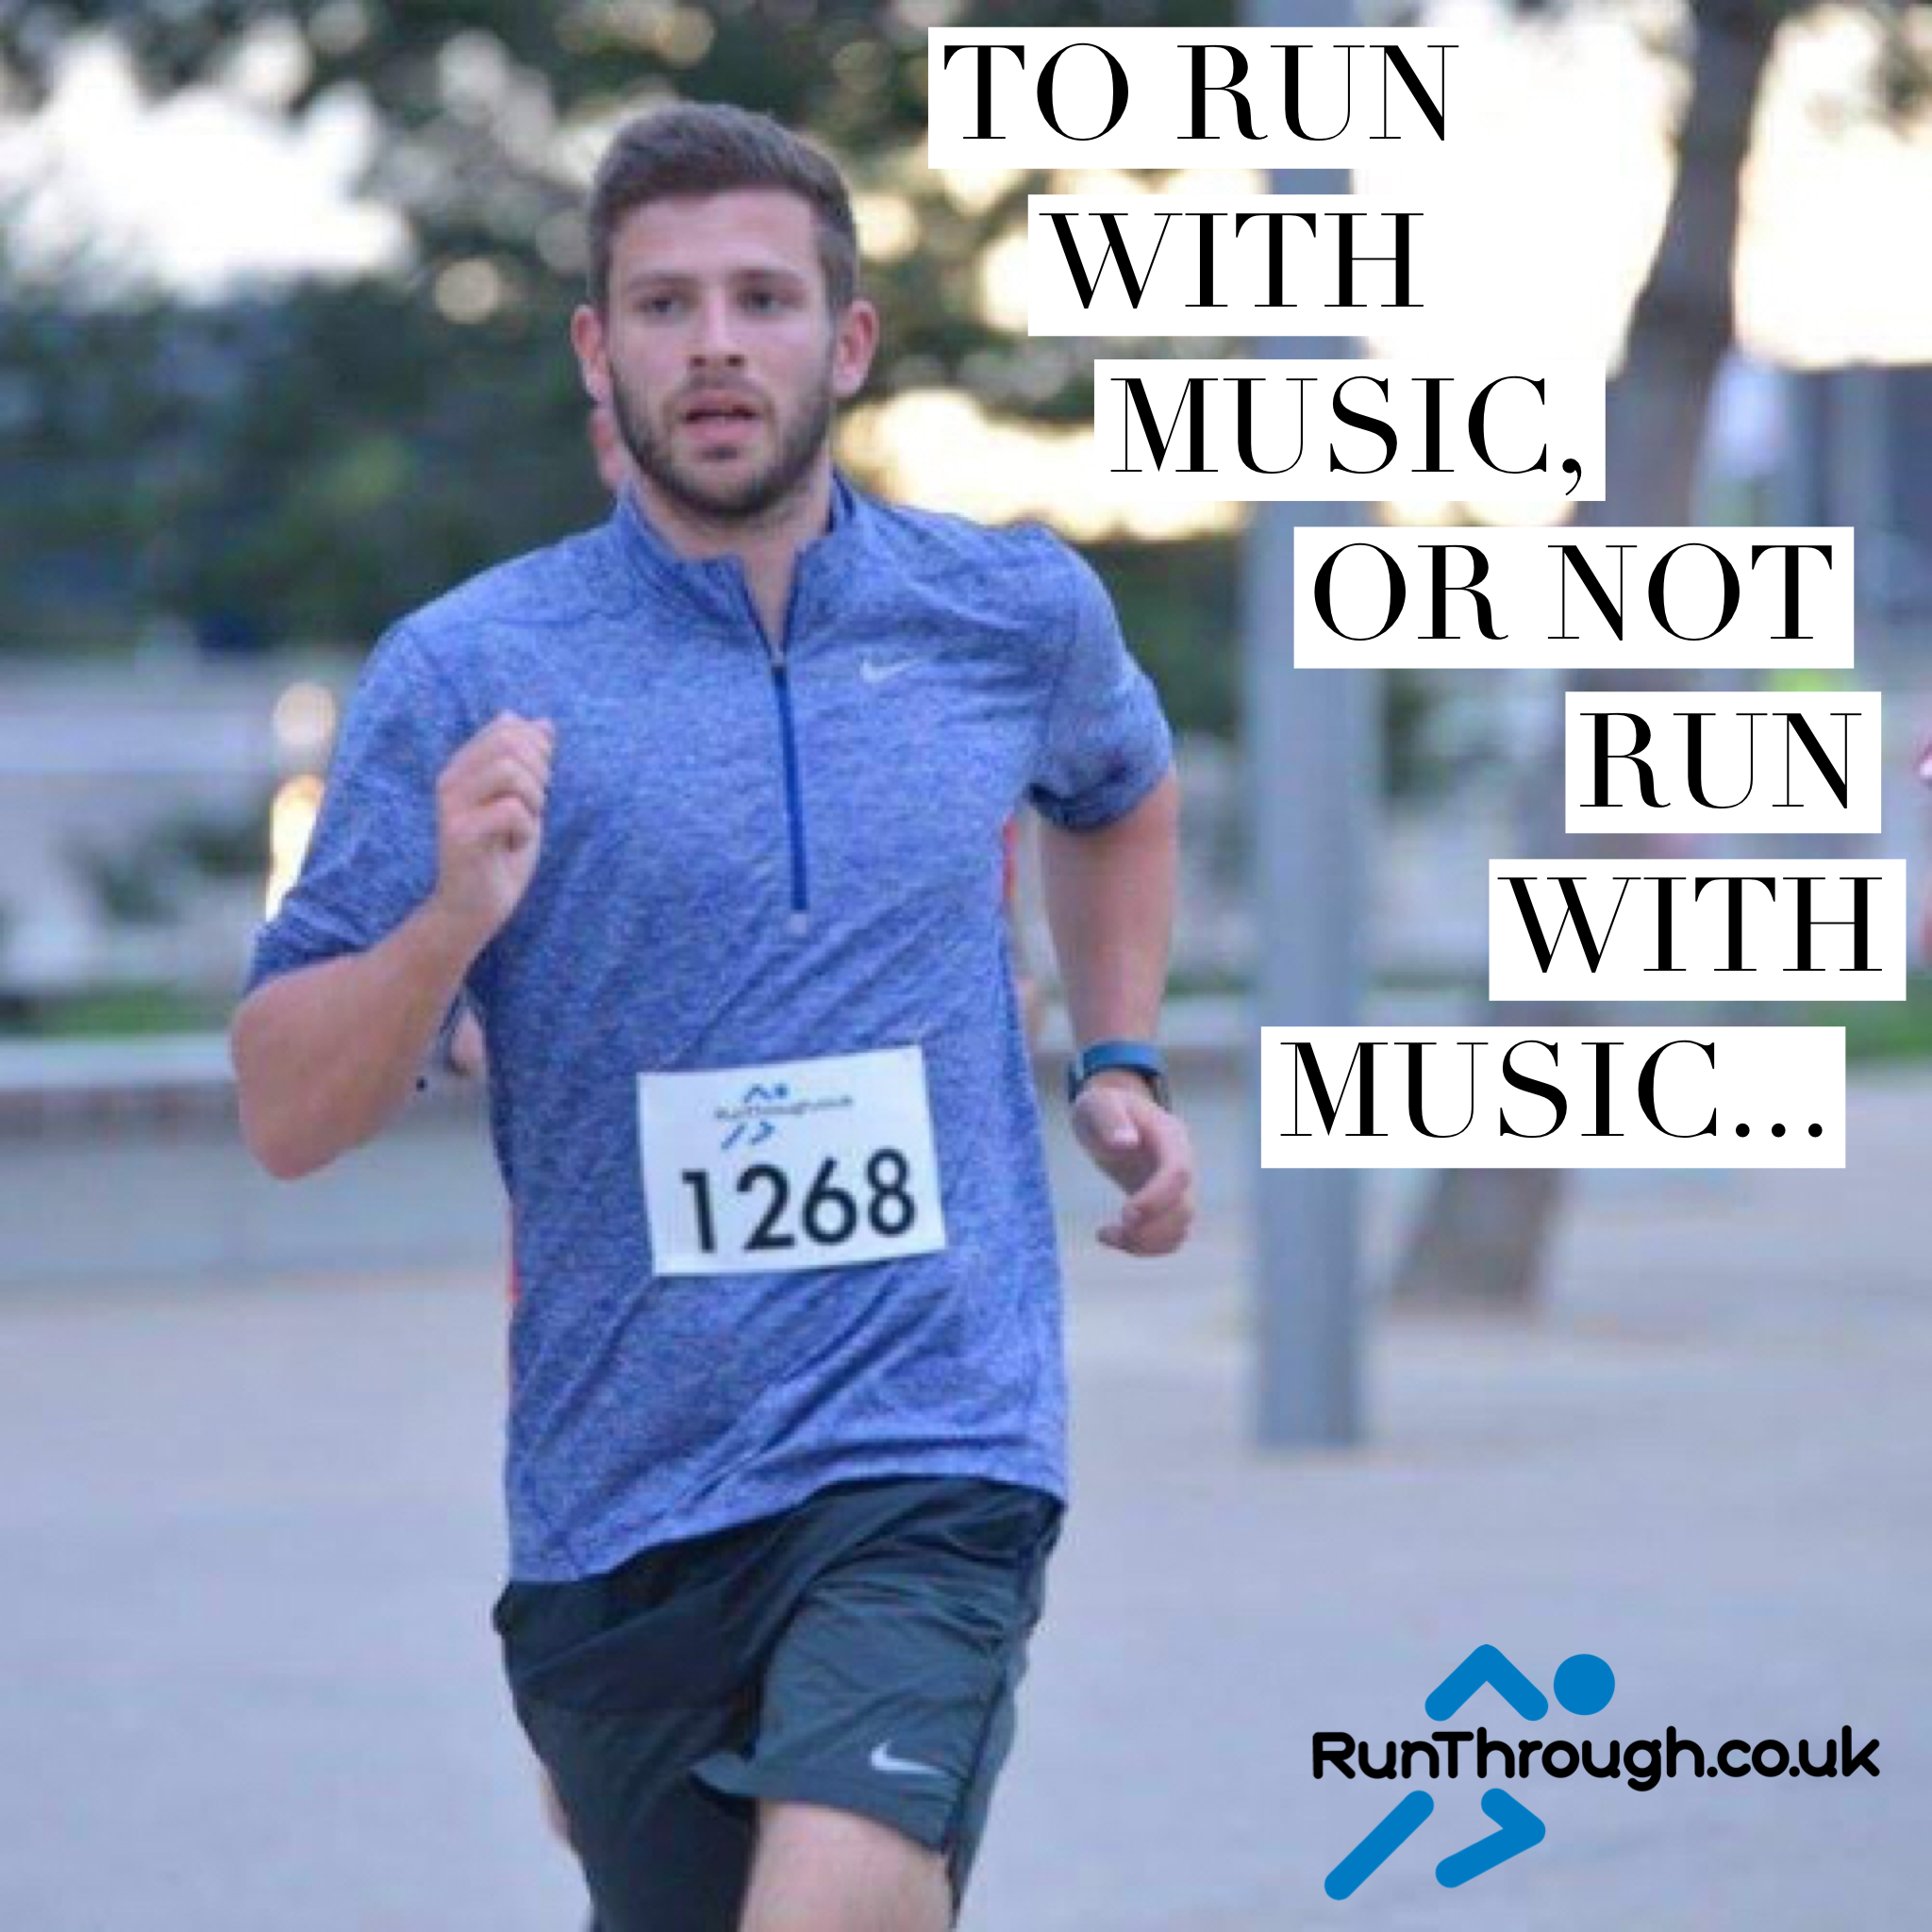 To run with music, or not to run with music